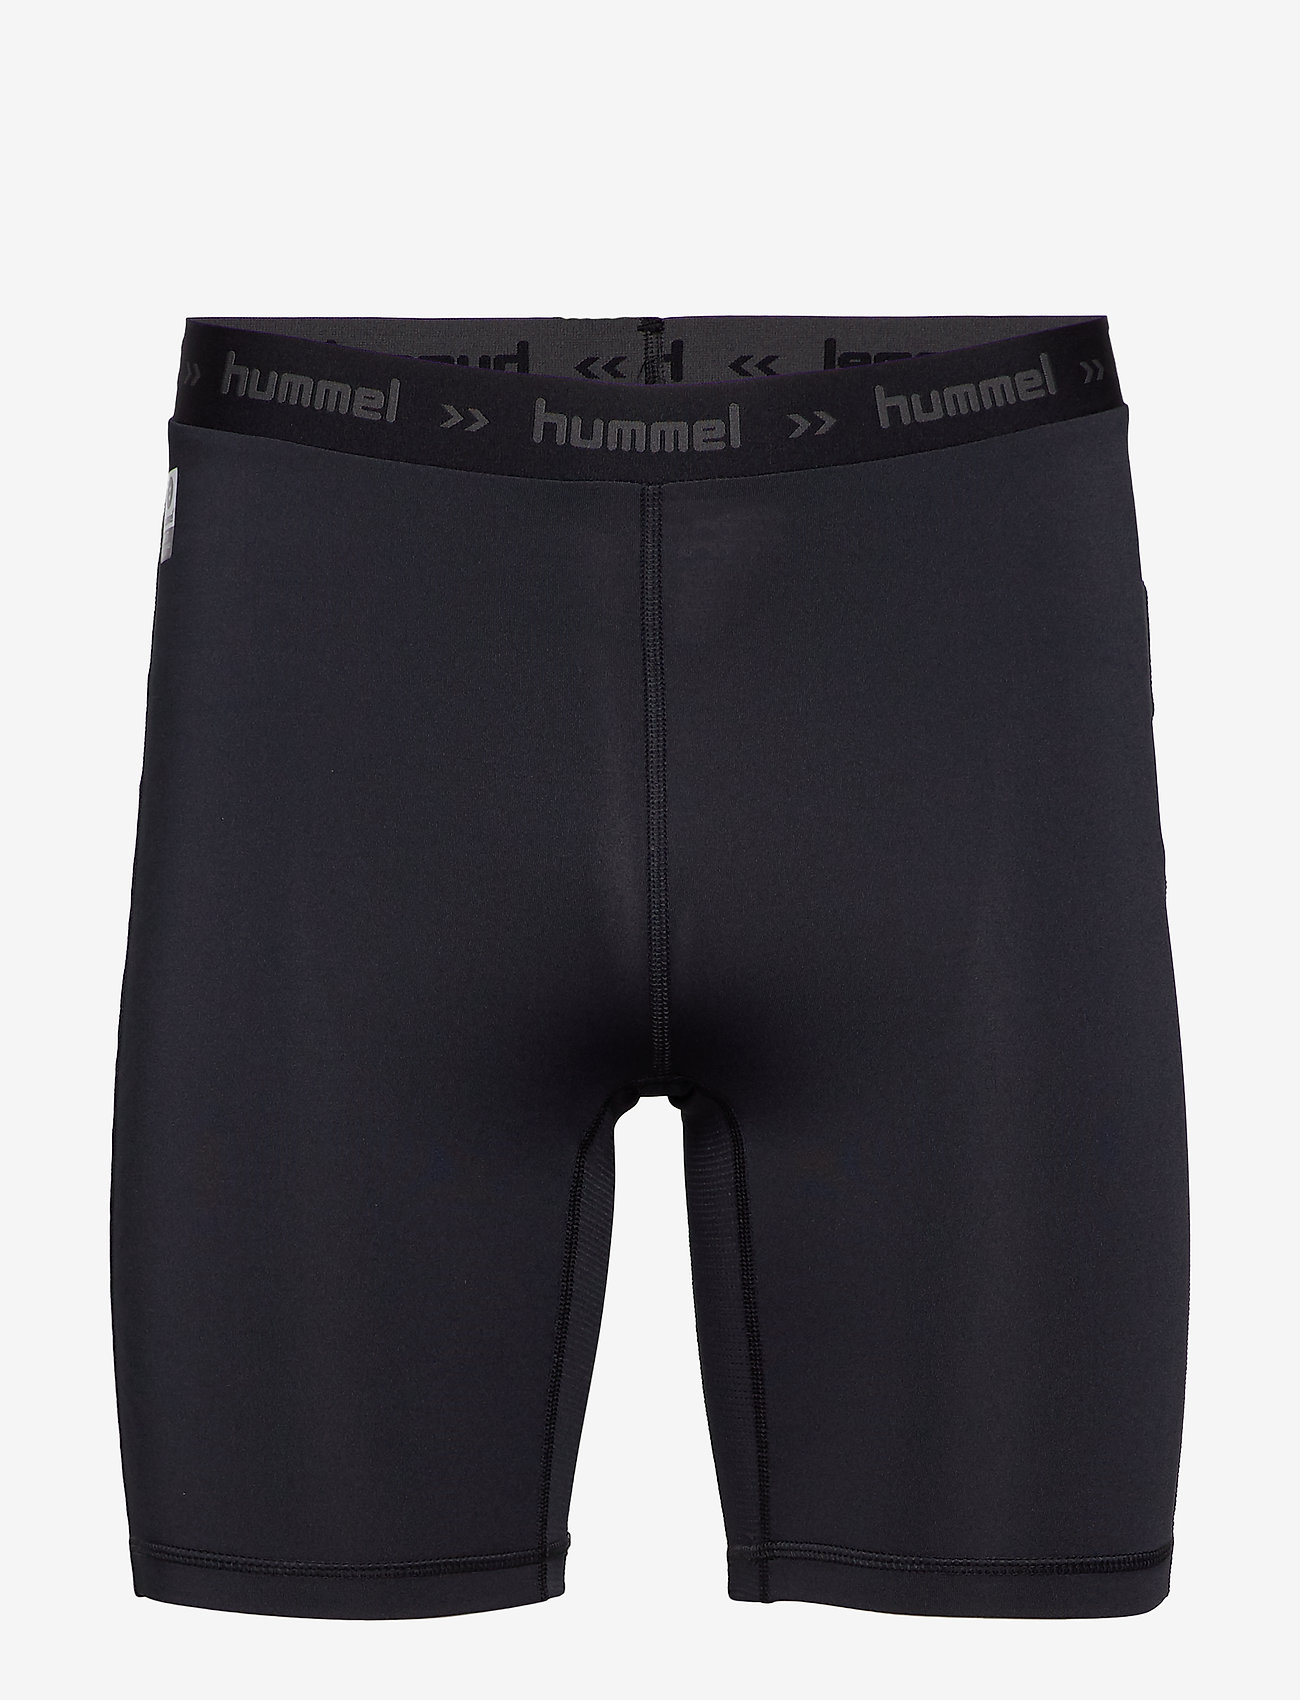 Hummel - HML FIRST PERFORMANCE TIGHT SHORTS - chaussures de course - black - 0